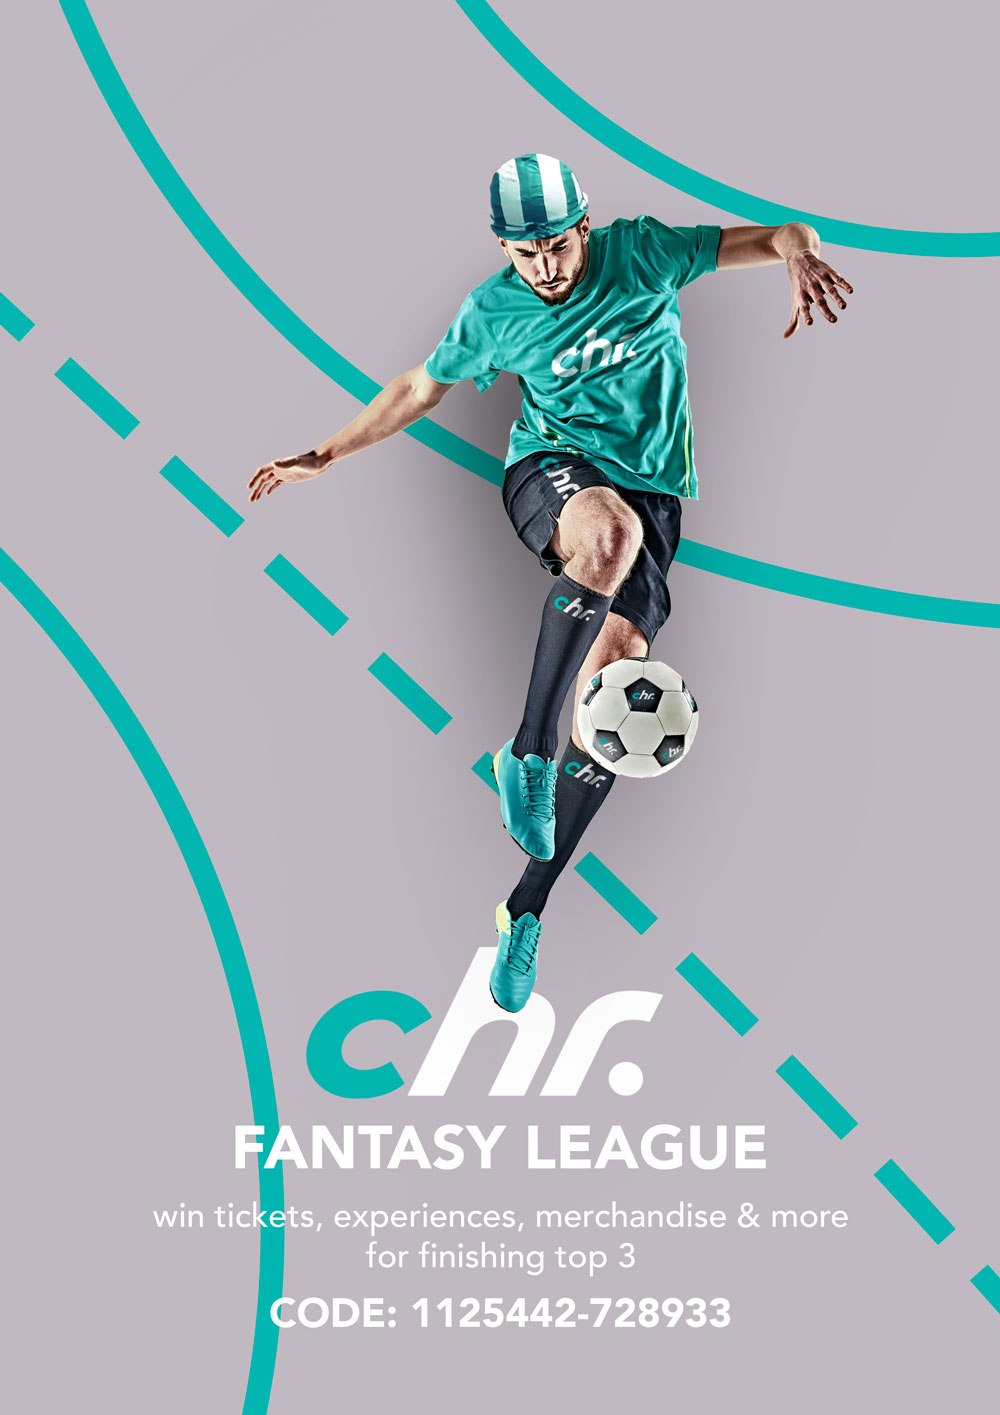 Join the CHR Fantasy League